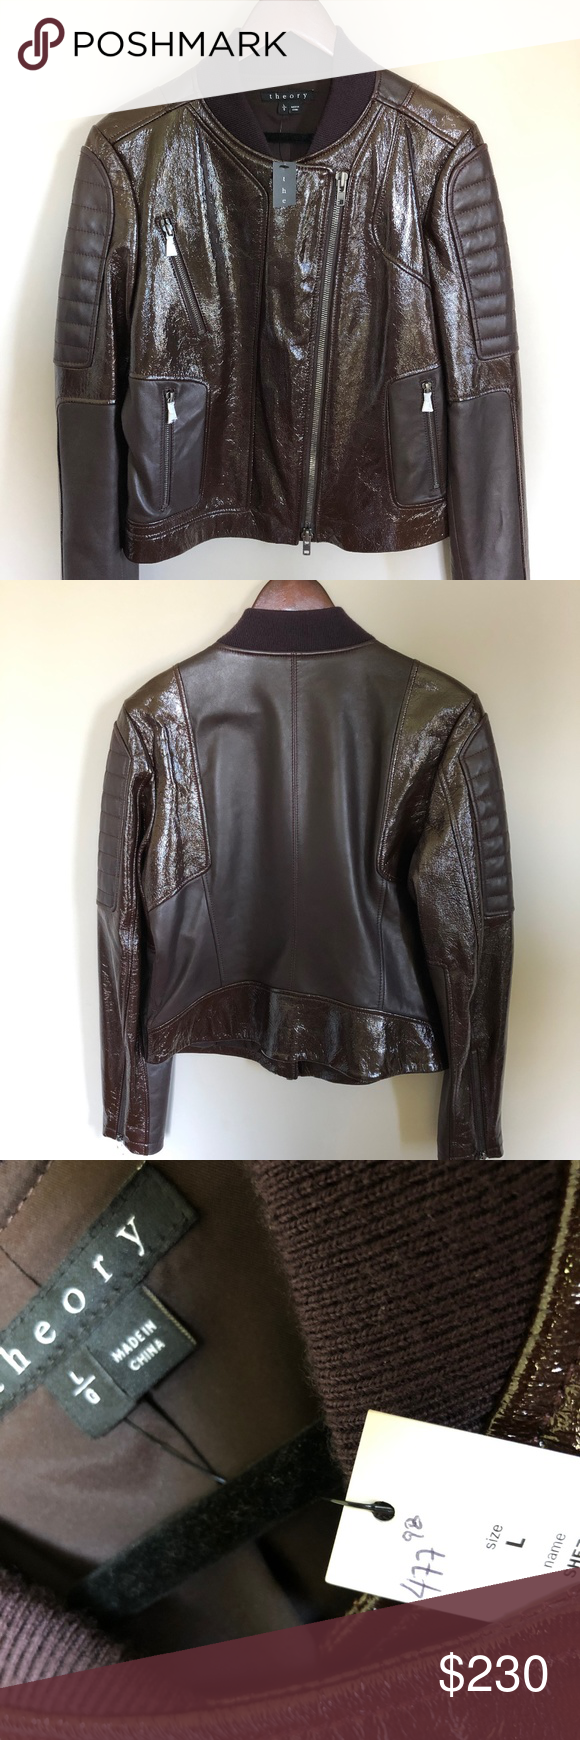 Brand New Leather Theory Jacket Jackets Leather Jacket Brands [ 1740 x 580 Pixel ]